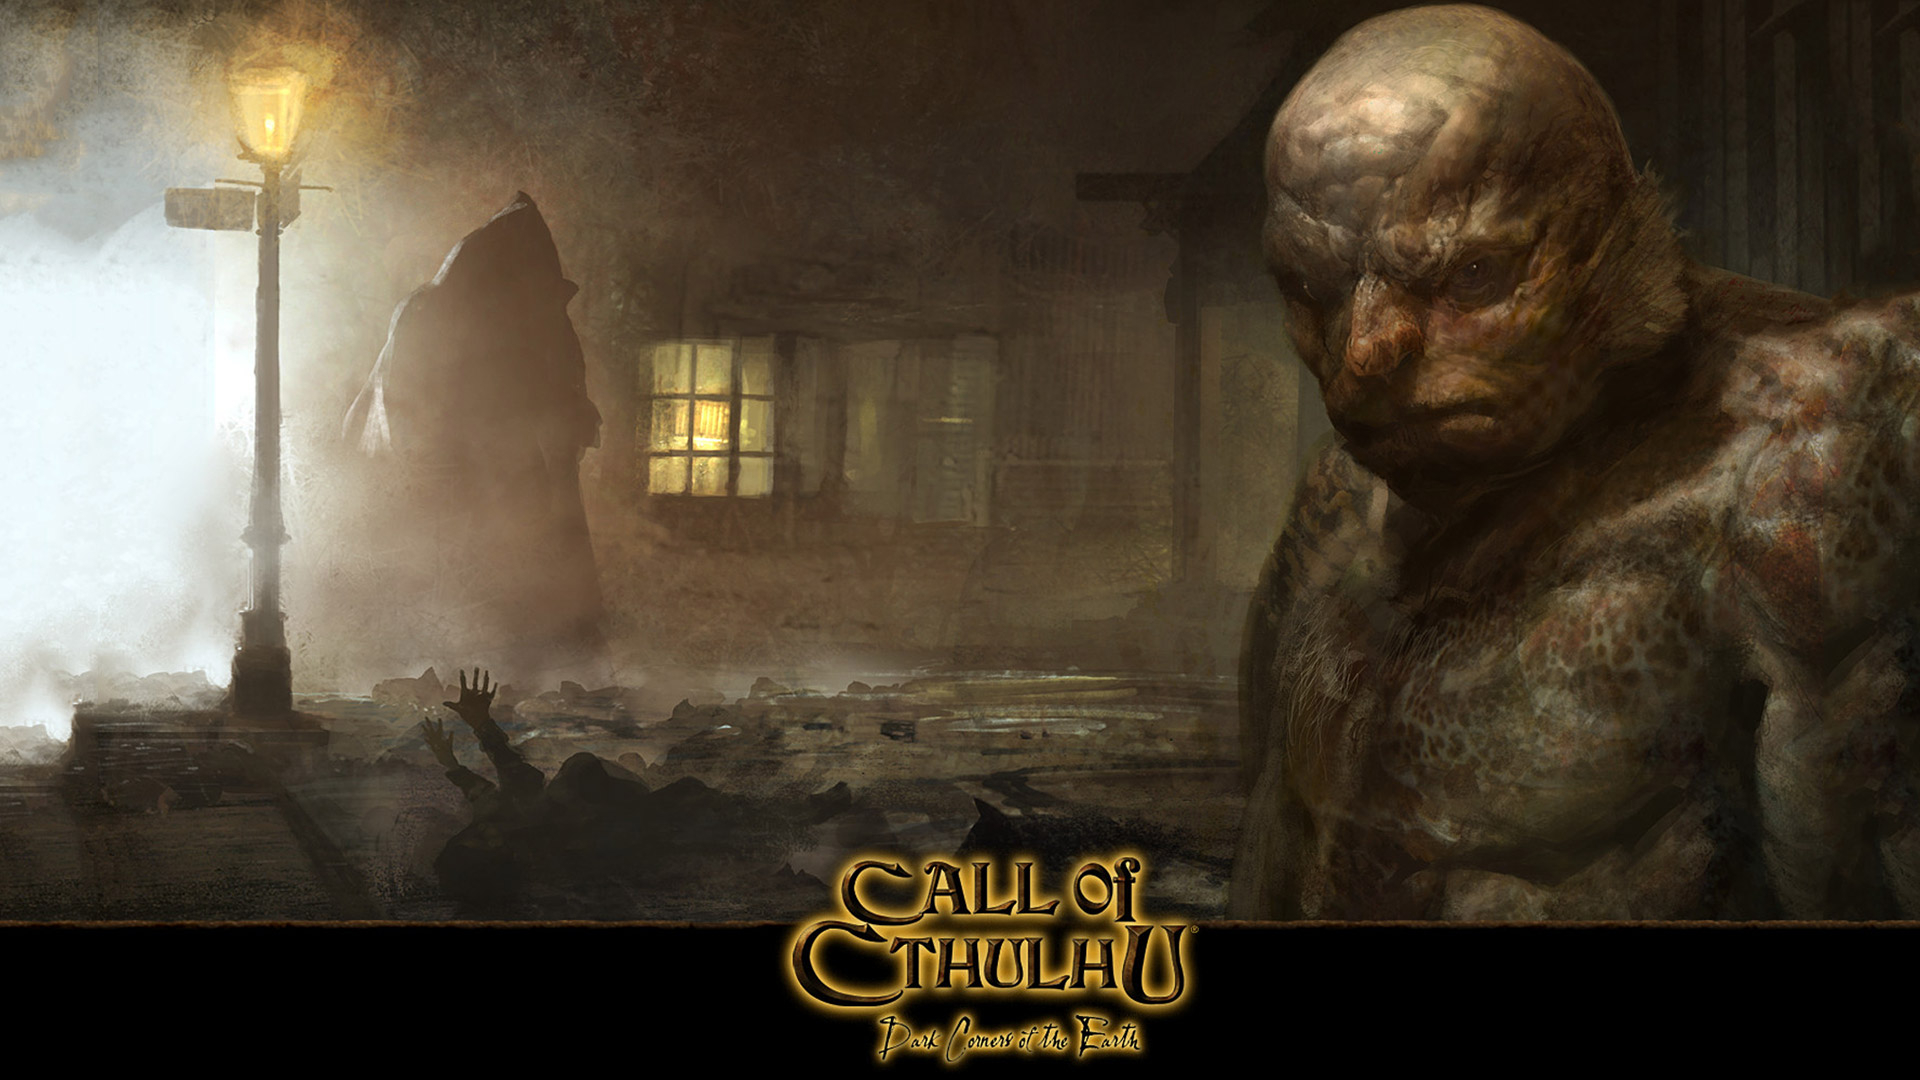 Call of Cthulhu: Dark Corners of the Earth Wallpaper in 1920x1080